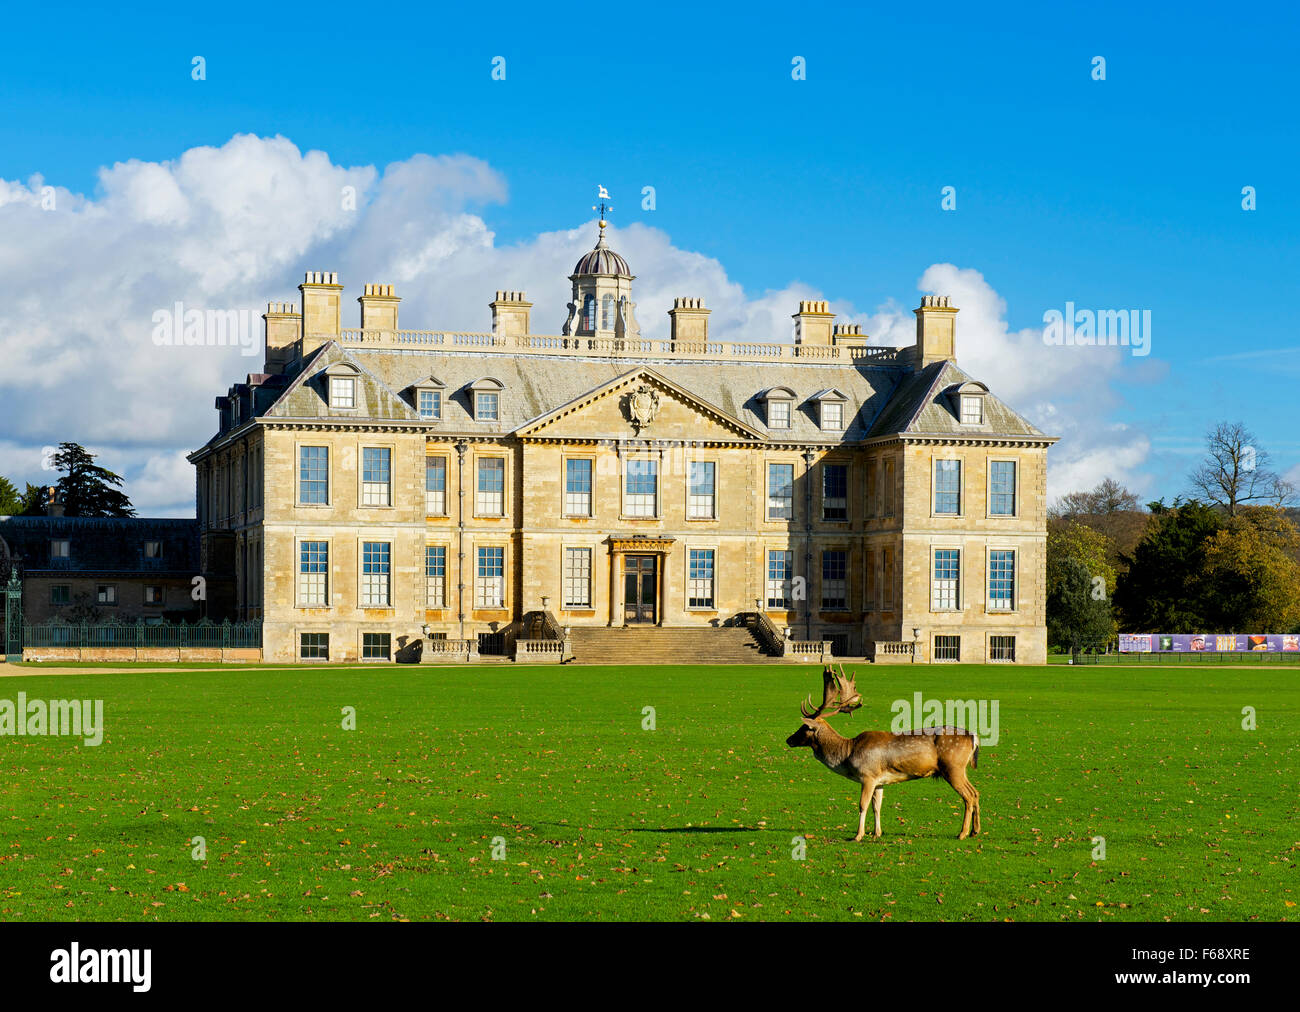 deer-grazing-in-front-of-belton-house-near-grantham-lincolnshire-england-F68XRE.jpg